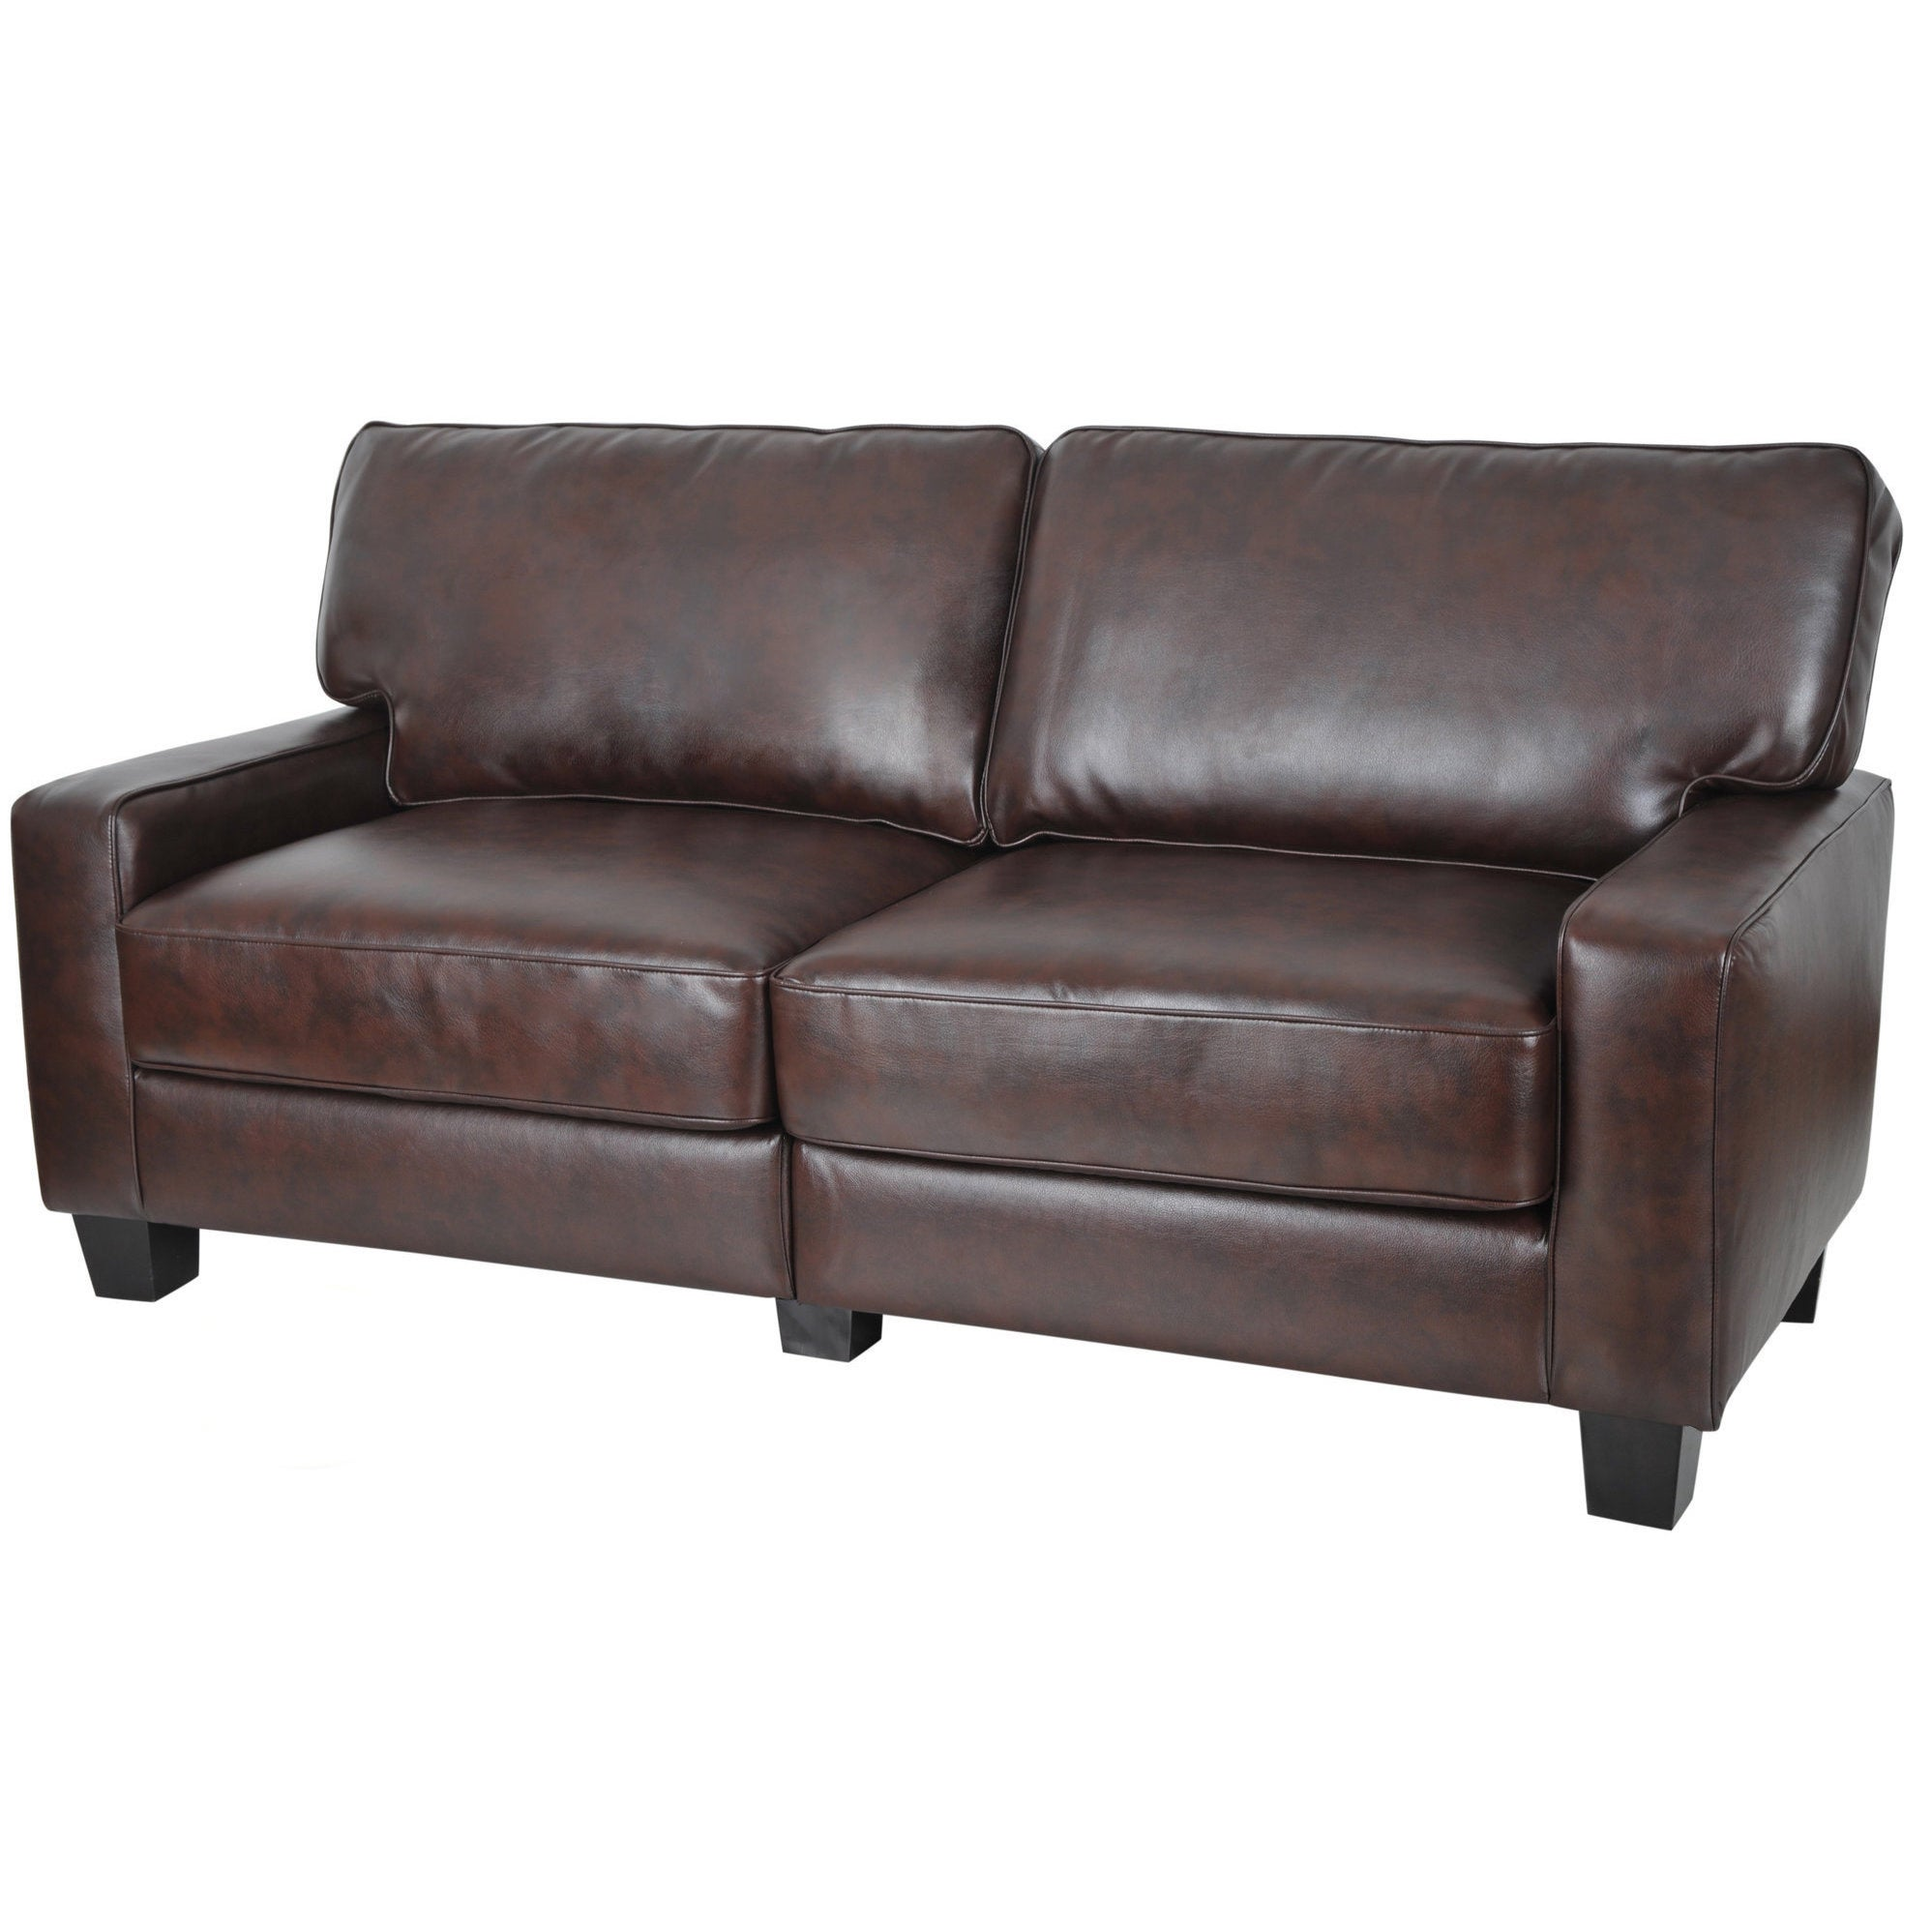 Serta Monaco Collection Biscuit Brown Bonded Leather Sofa Overstock Shopping Great Deals On